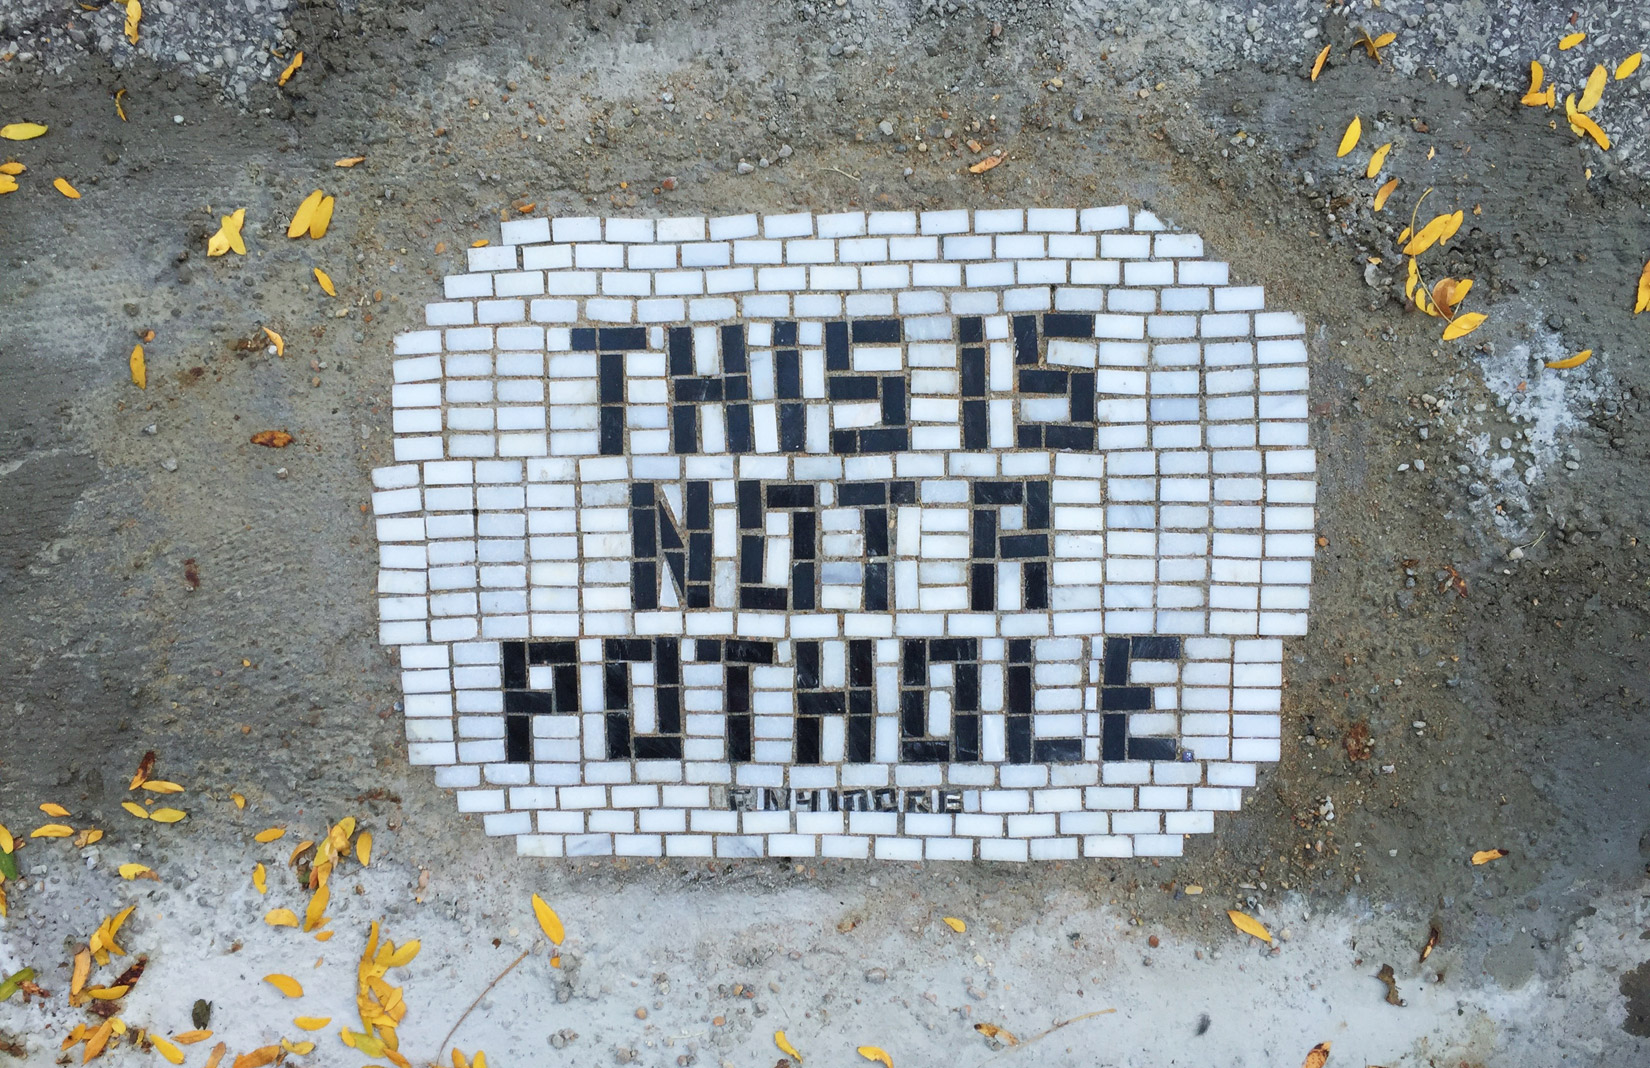 slogan---pothole-mosaic-by-Jim-Bachor